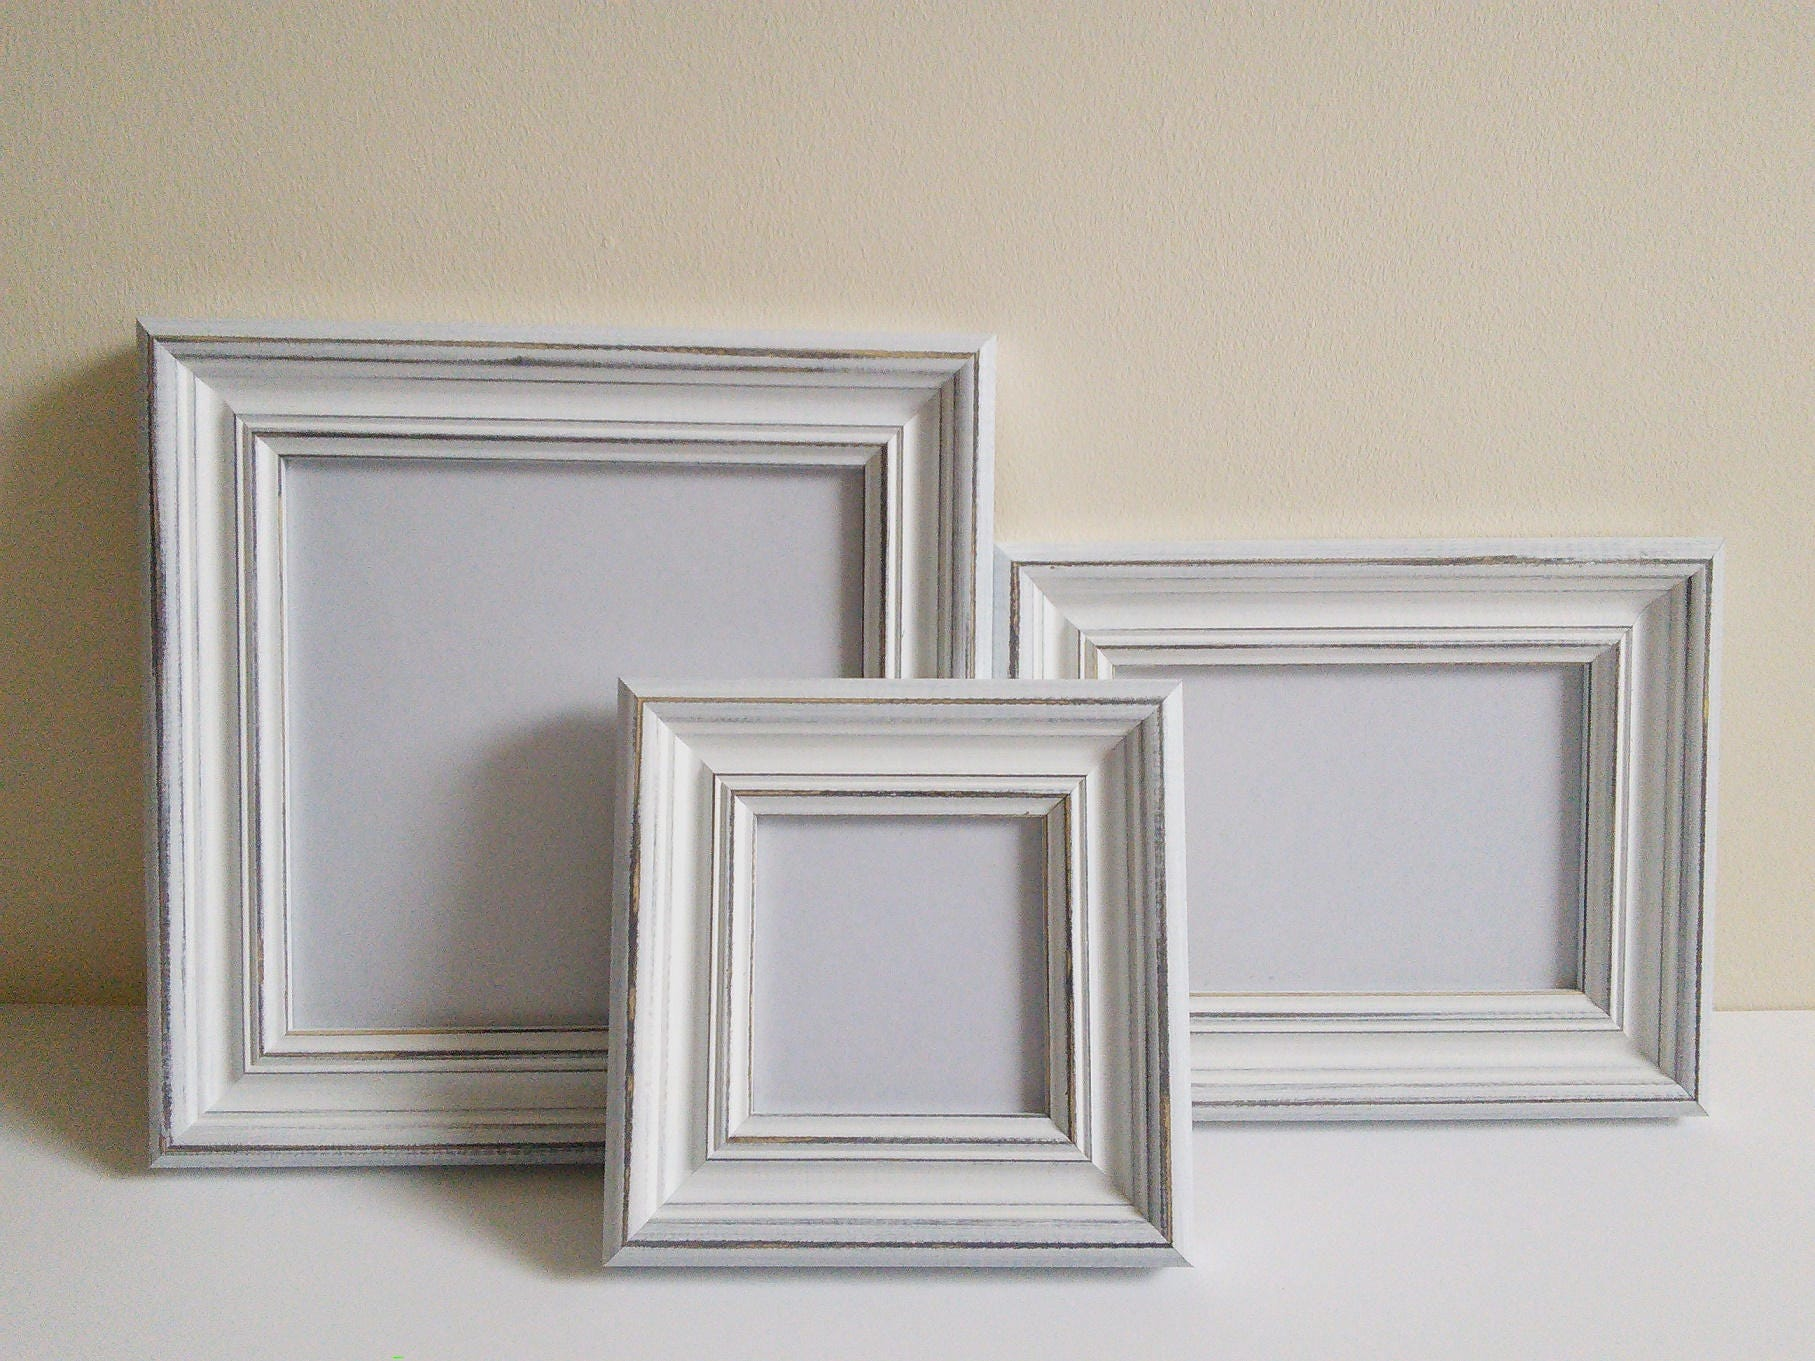 Poster frame photo frame picture frame a4 wash white distressed frame living home decor framing - Nanu nana poster ...